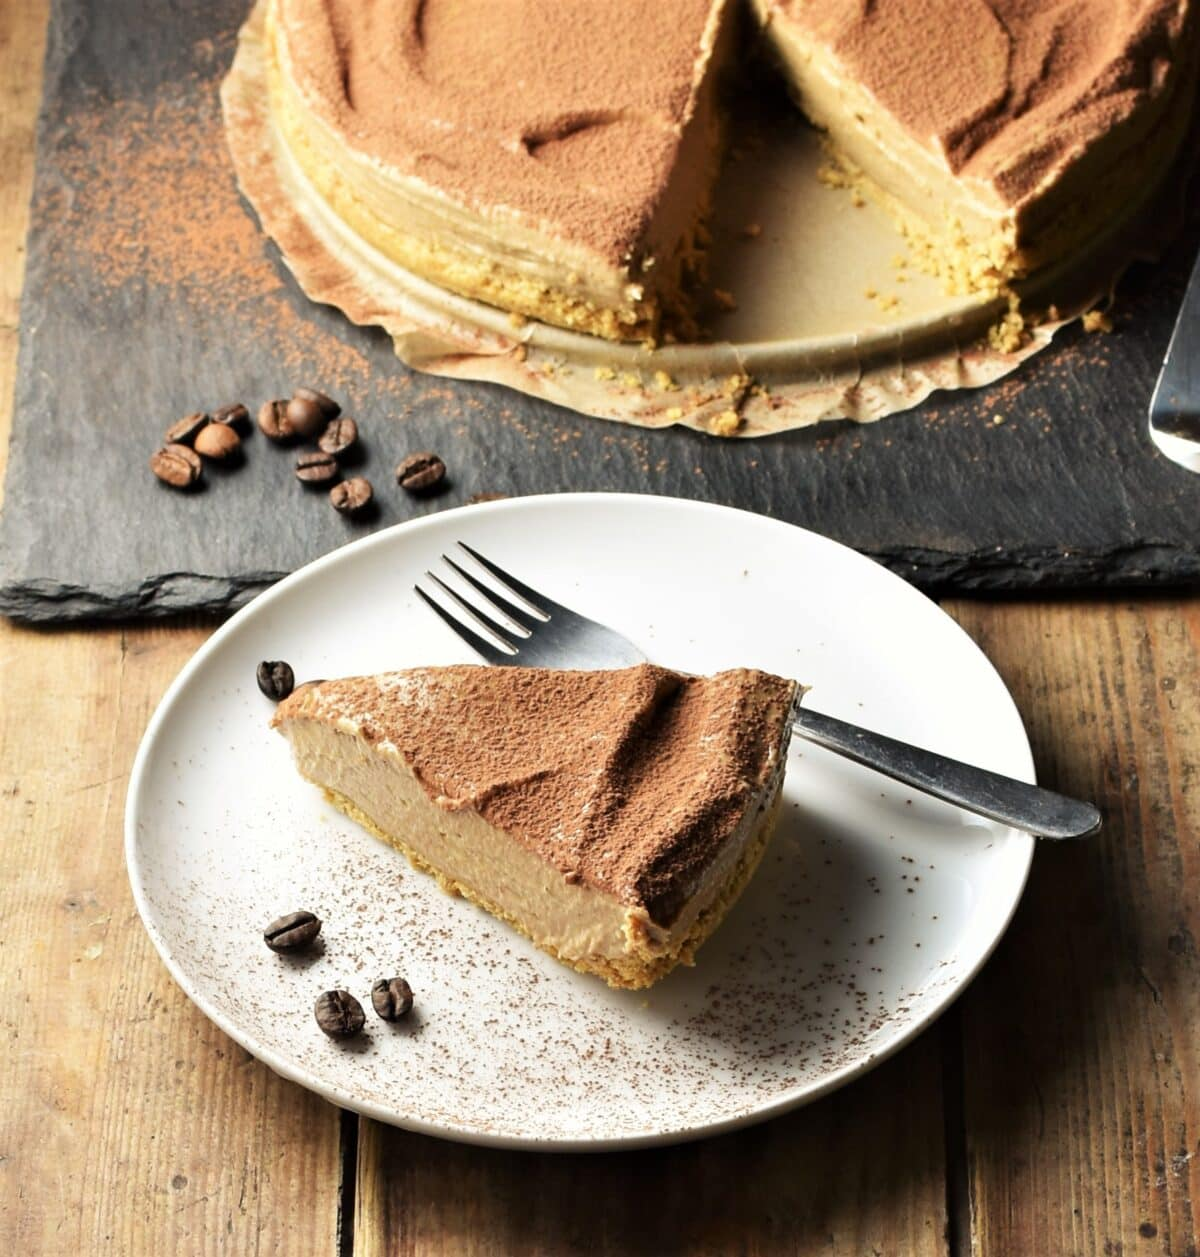 Slice of coffee cheesecake on white plate with coffee beans and fork, with cheesecake in background.